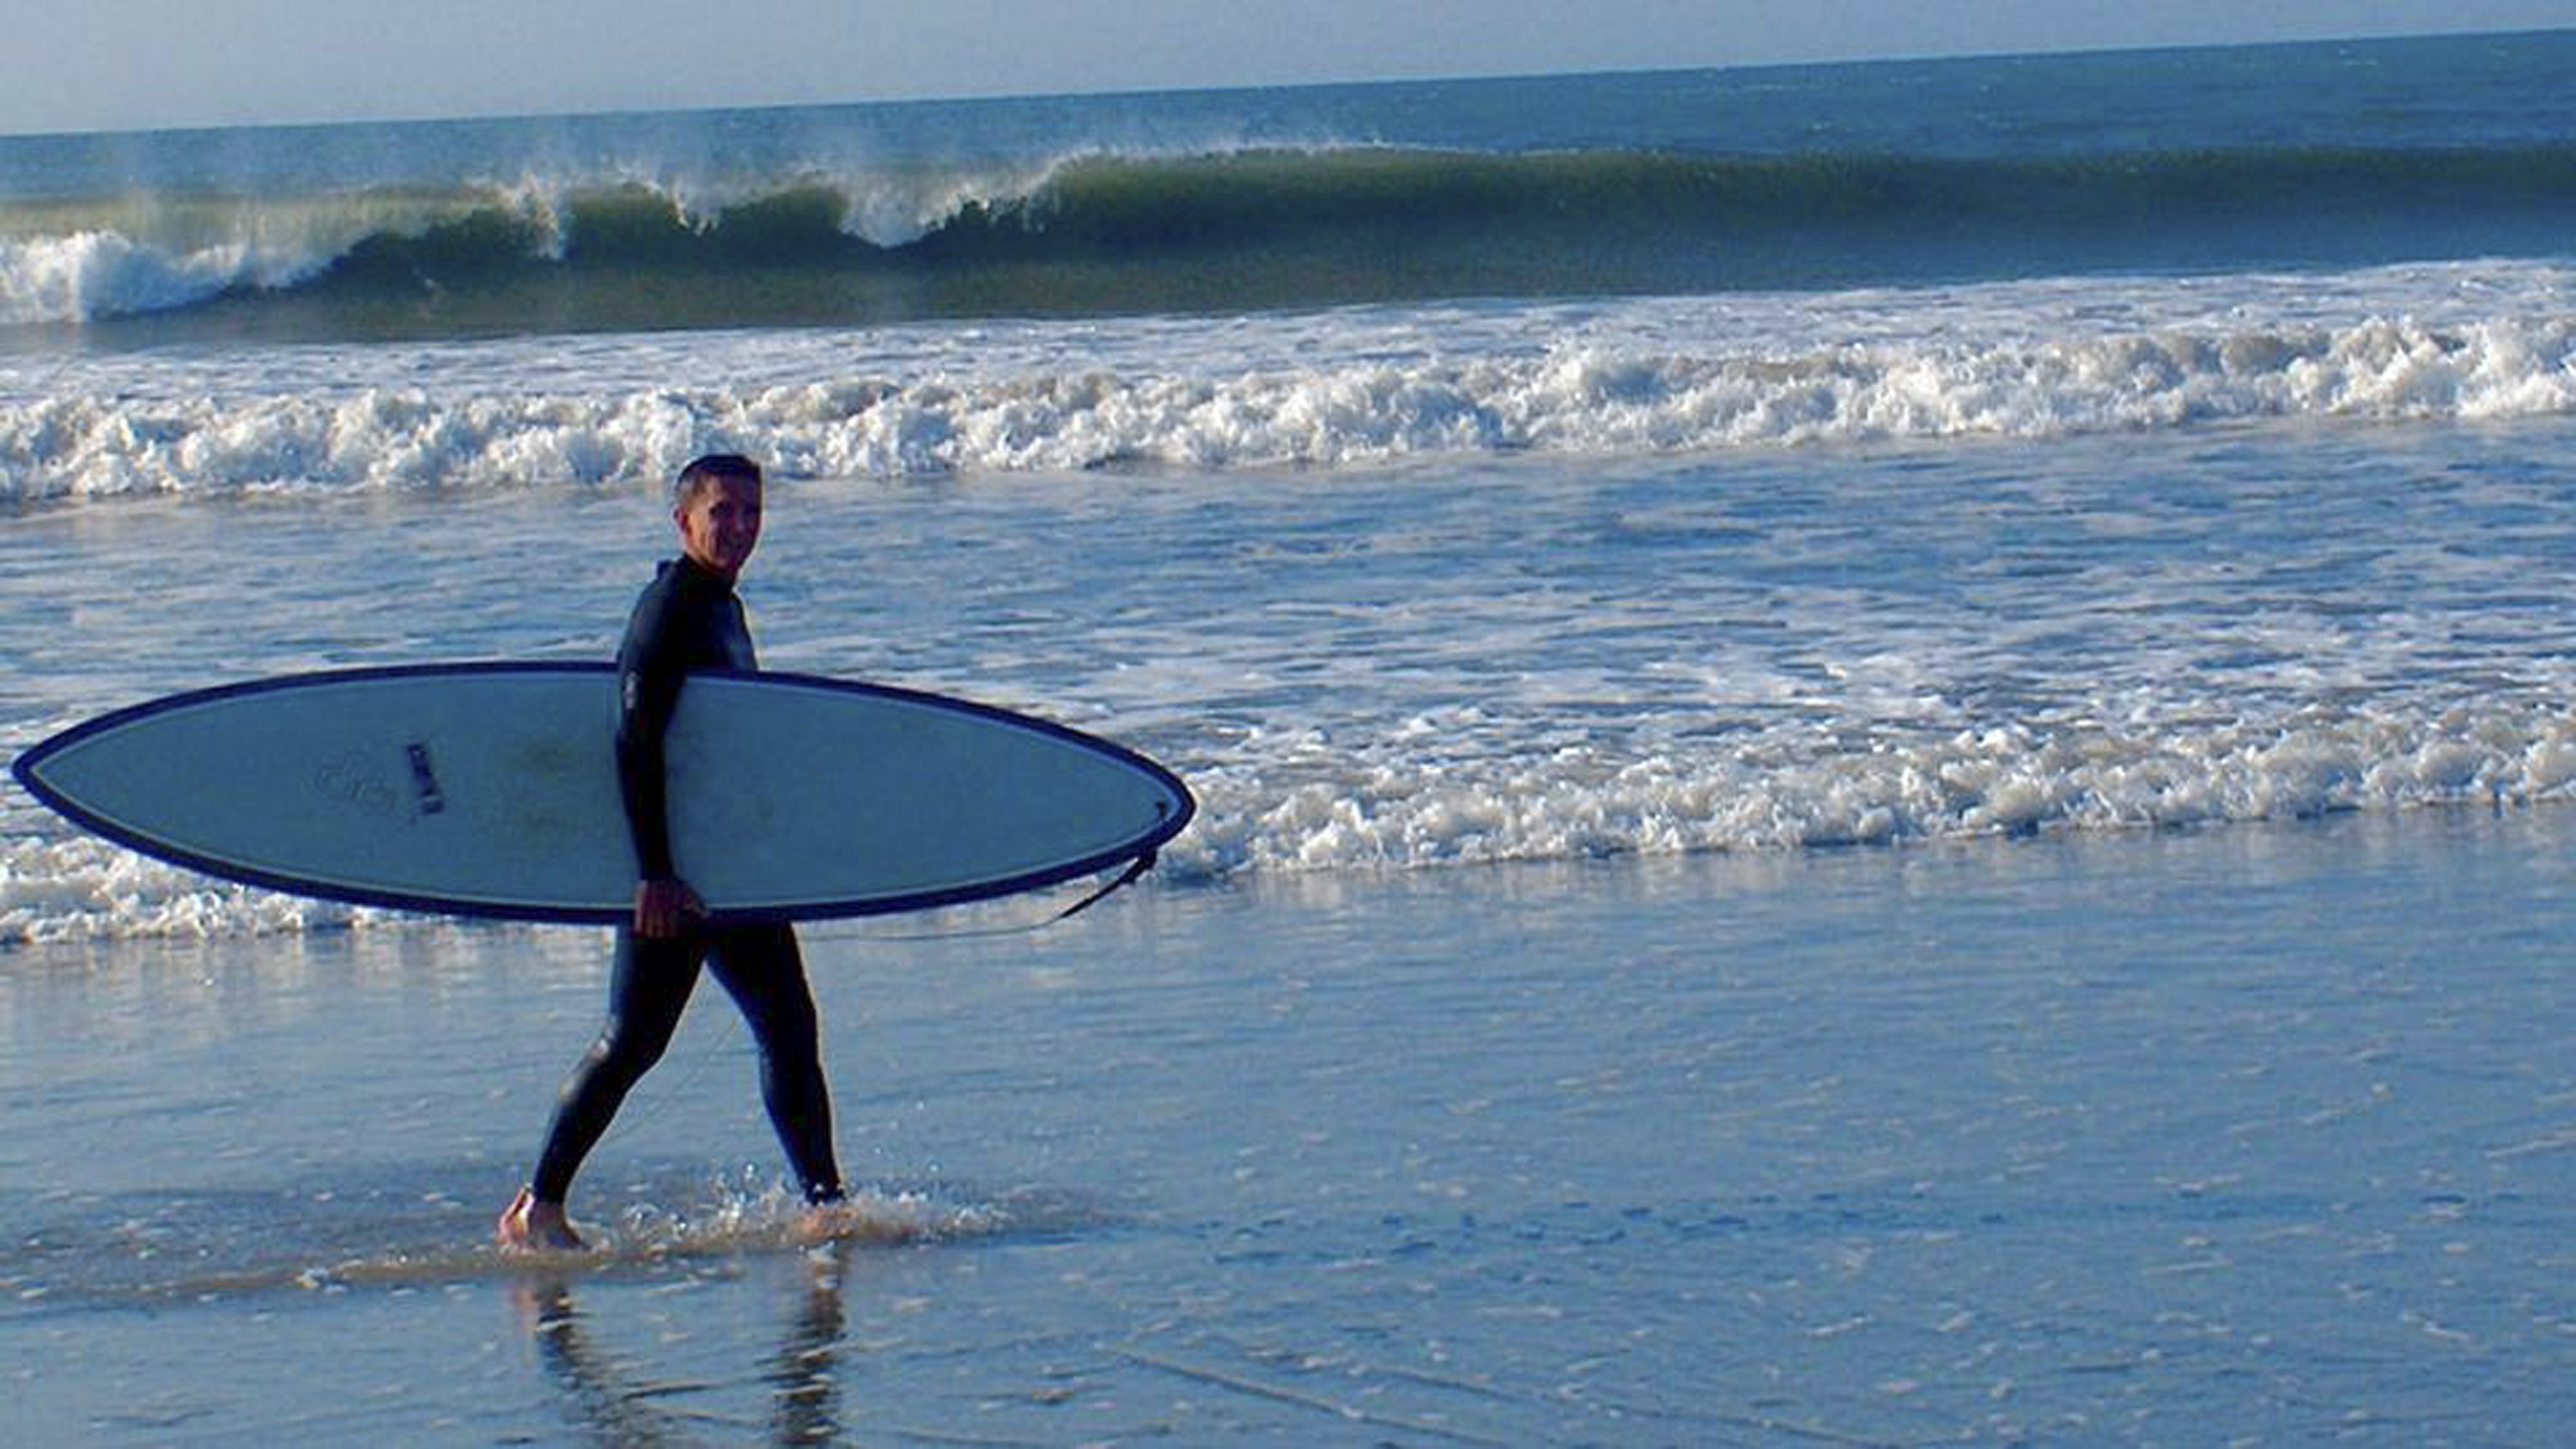 Flynn returns to hometown, surfing in respite from scandal